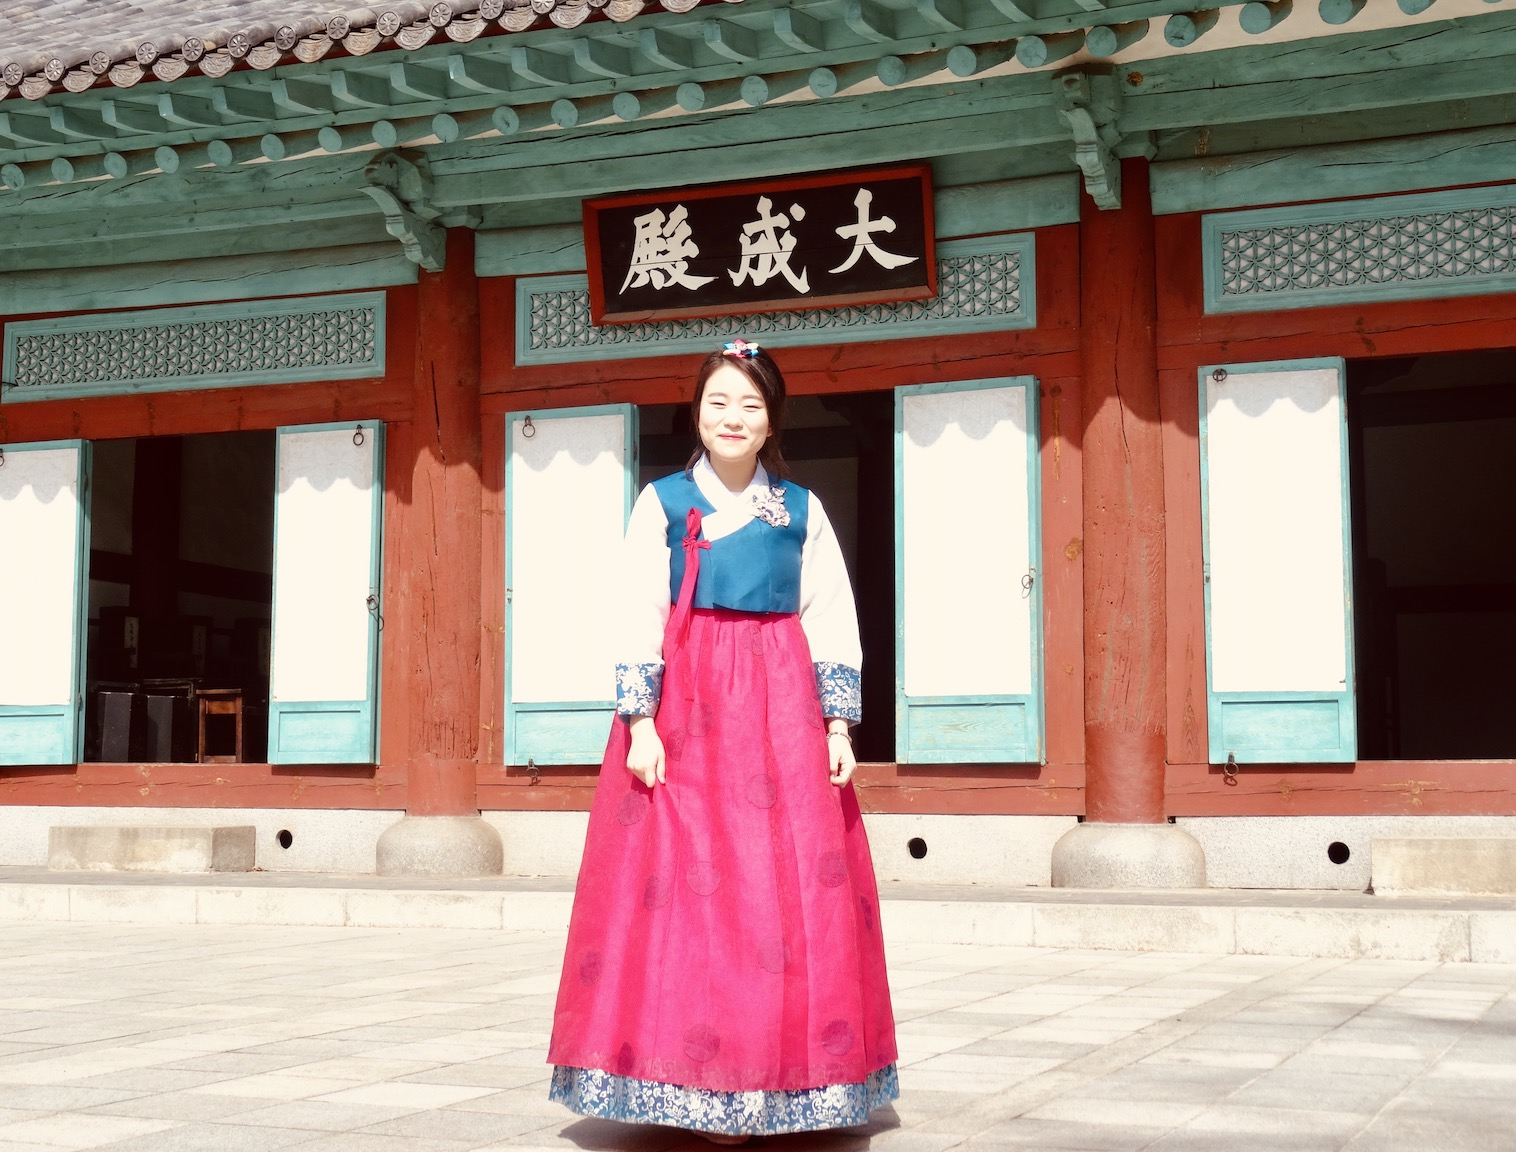 Traditional hanbok dress Jeonju South Korea.